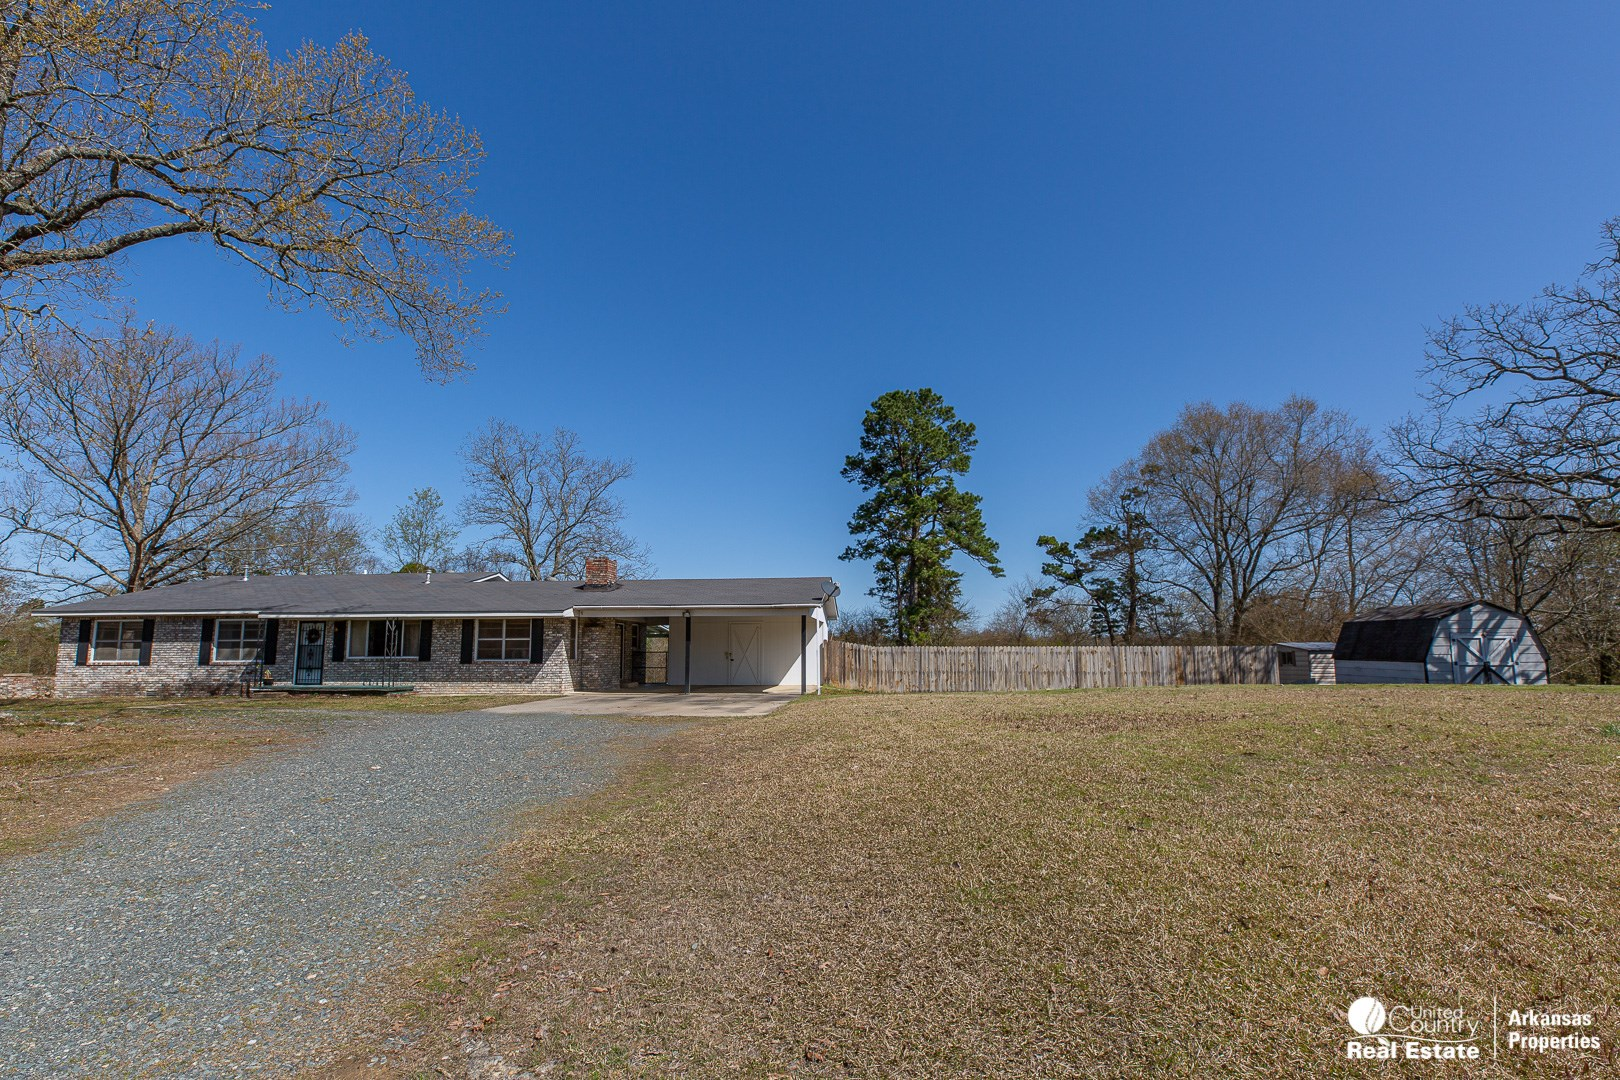 Home for Sale in Hatfield, AR